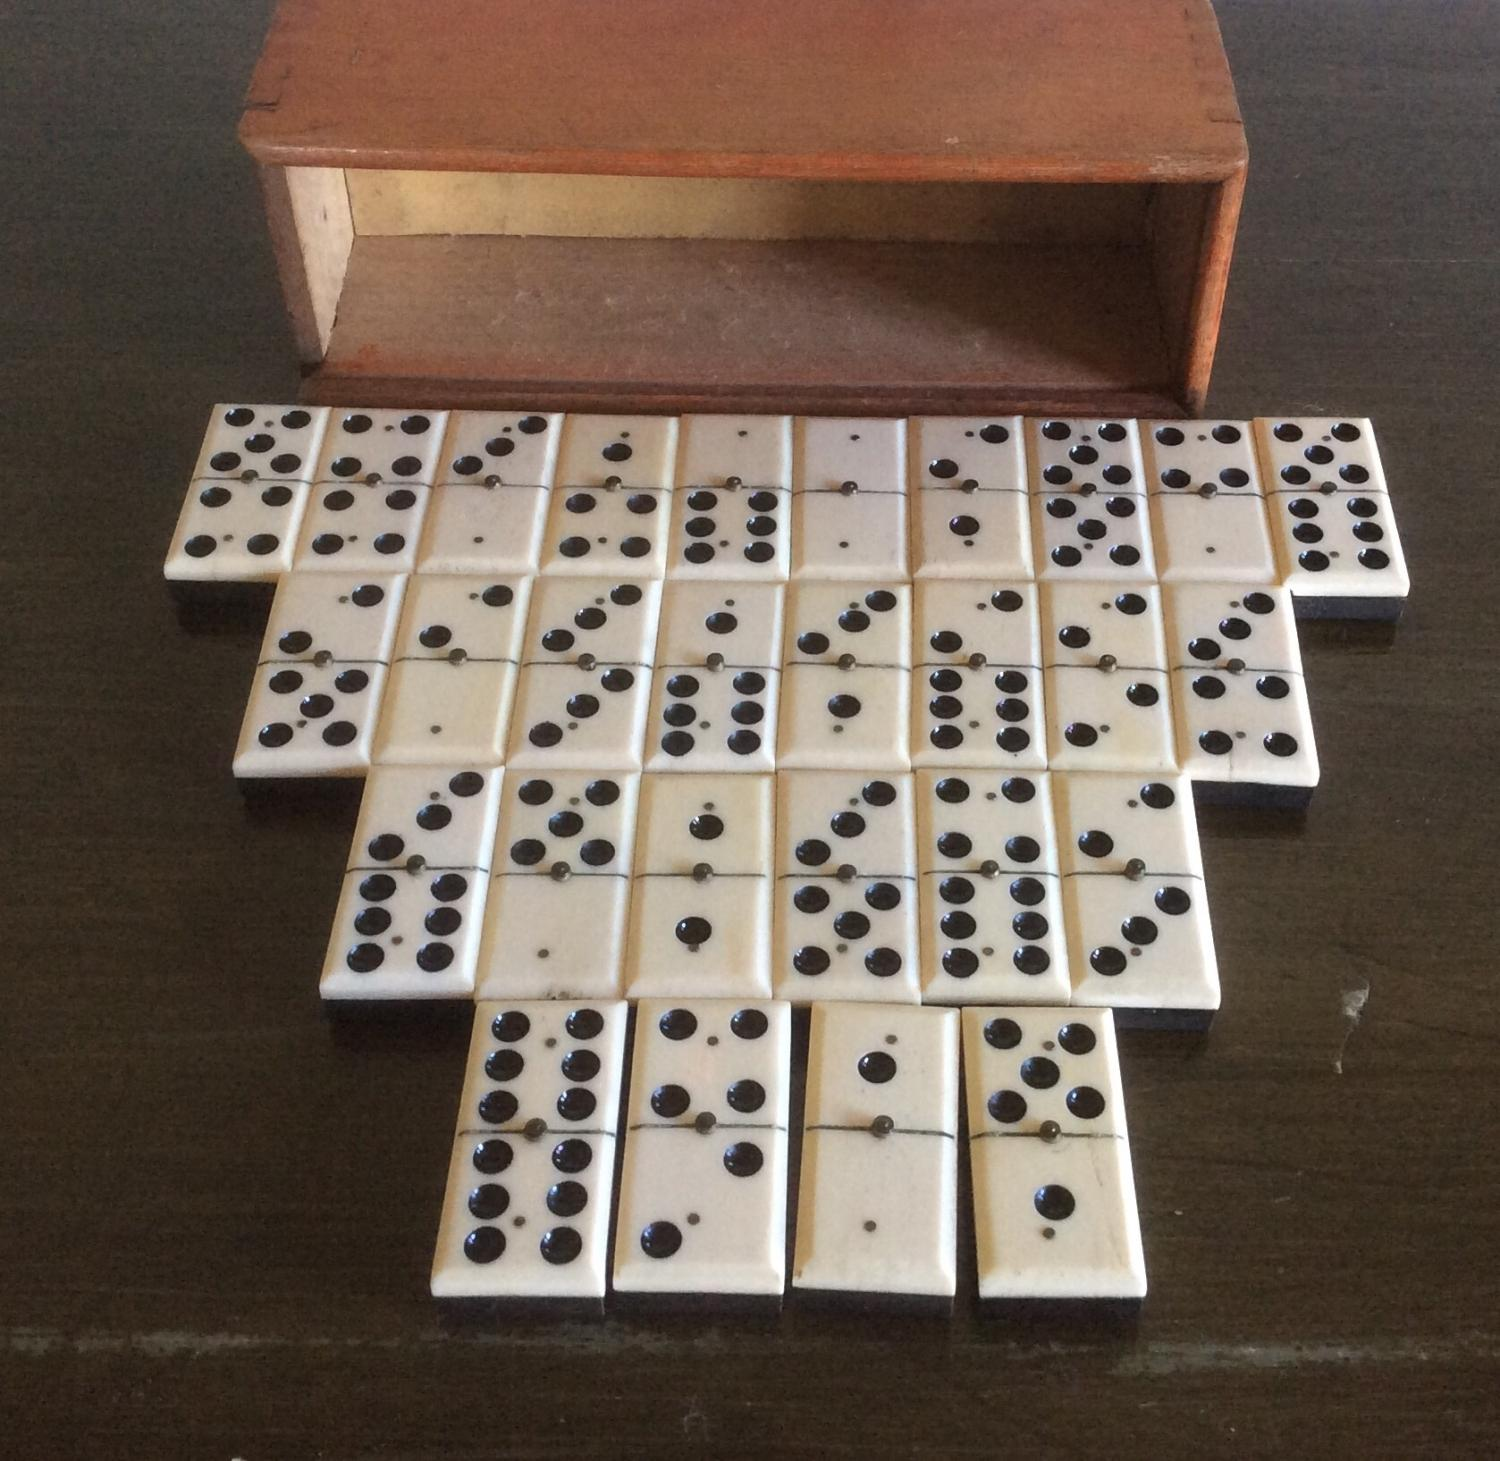 Standard studded Bone and Ebony Dominoes